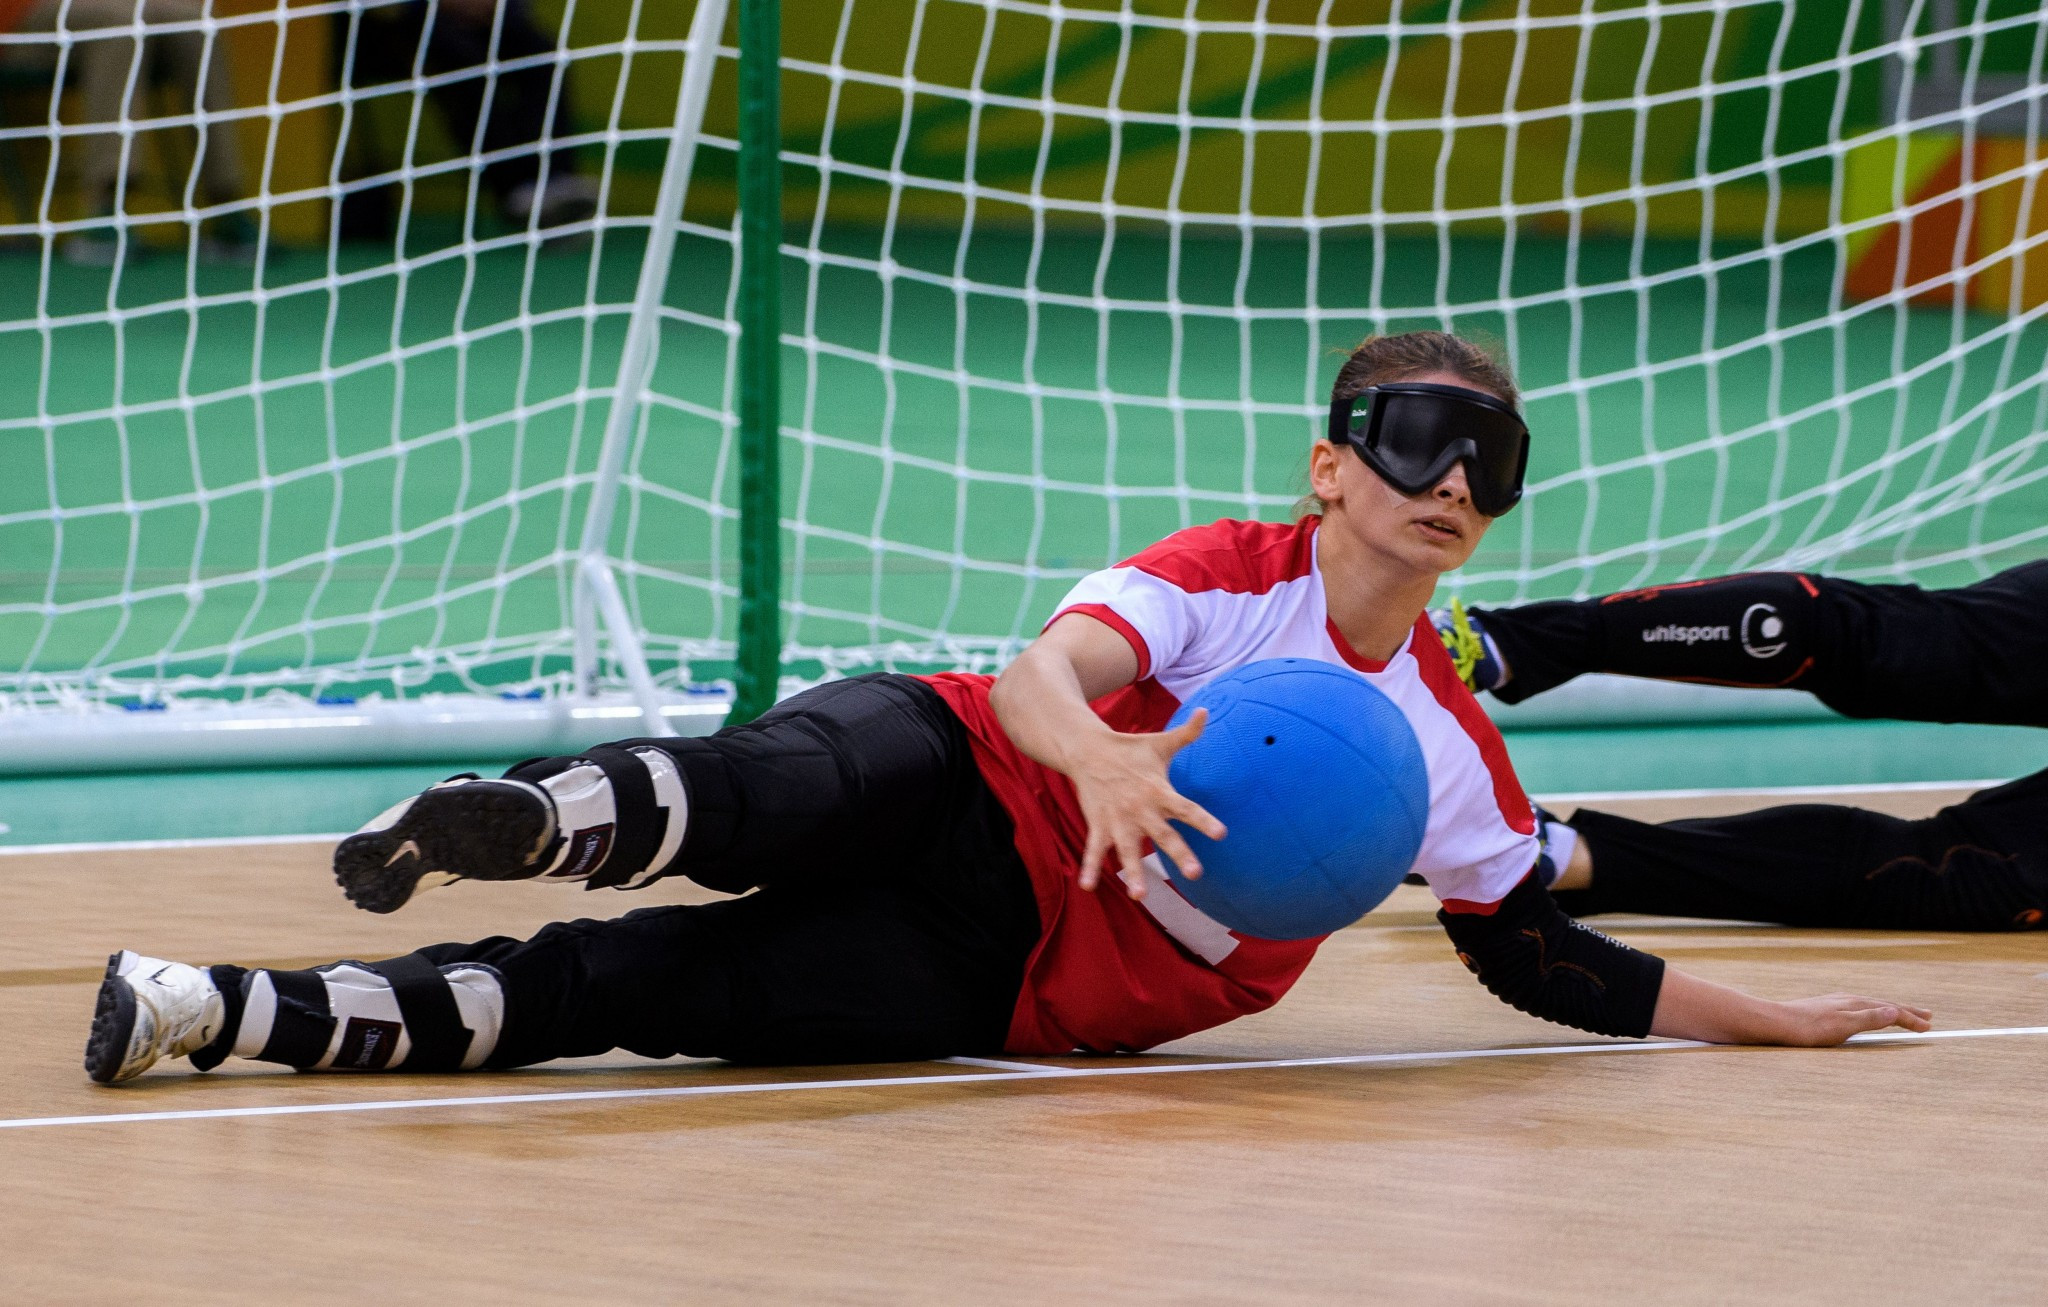 Turkey's women's goalball team won the best team accolade after claiming their maiden Paralympic title at Rio 2016 ©Getty Images